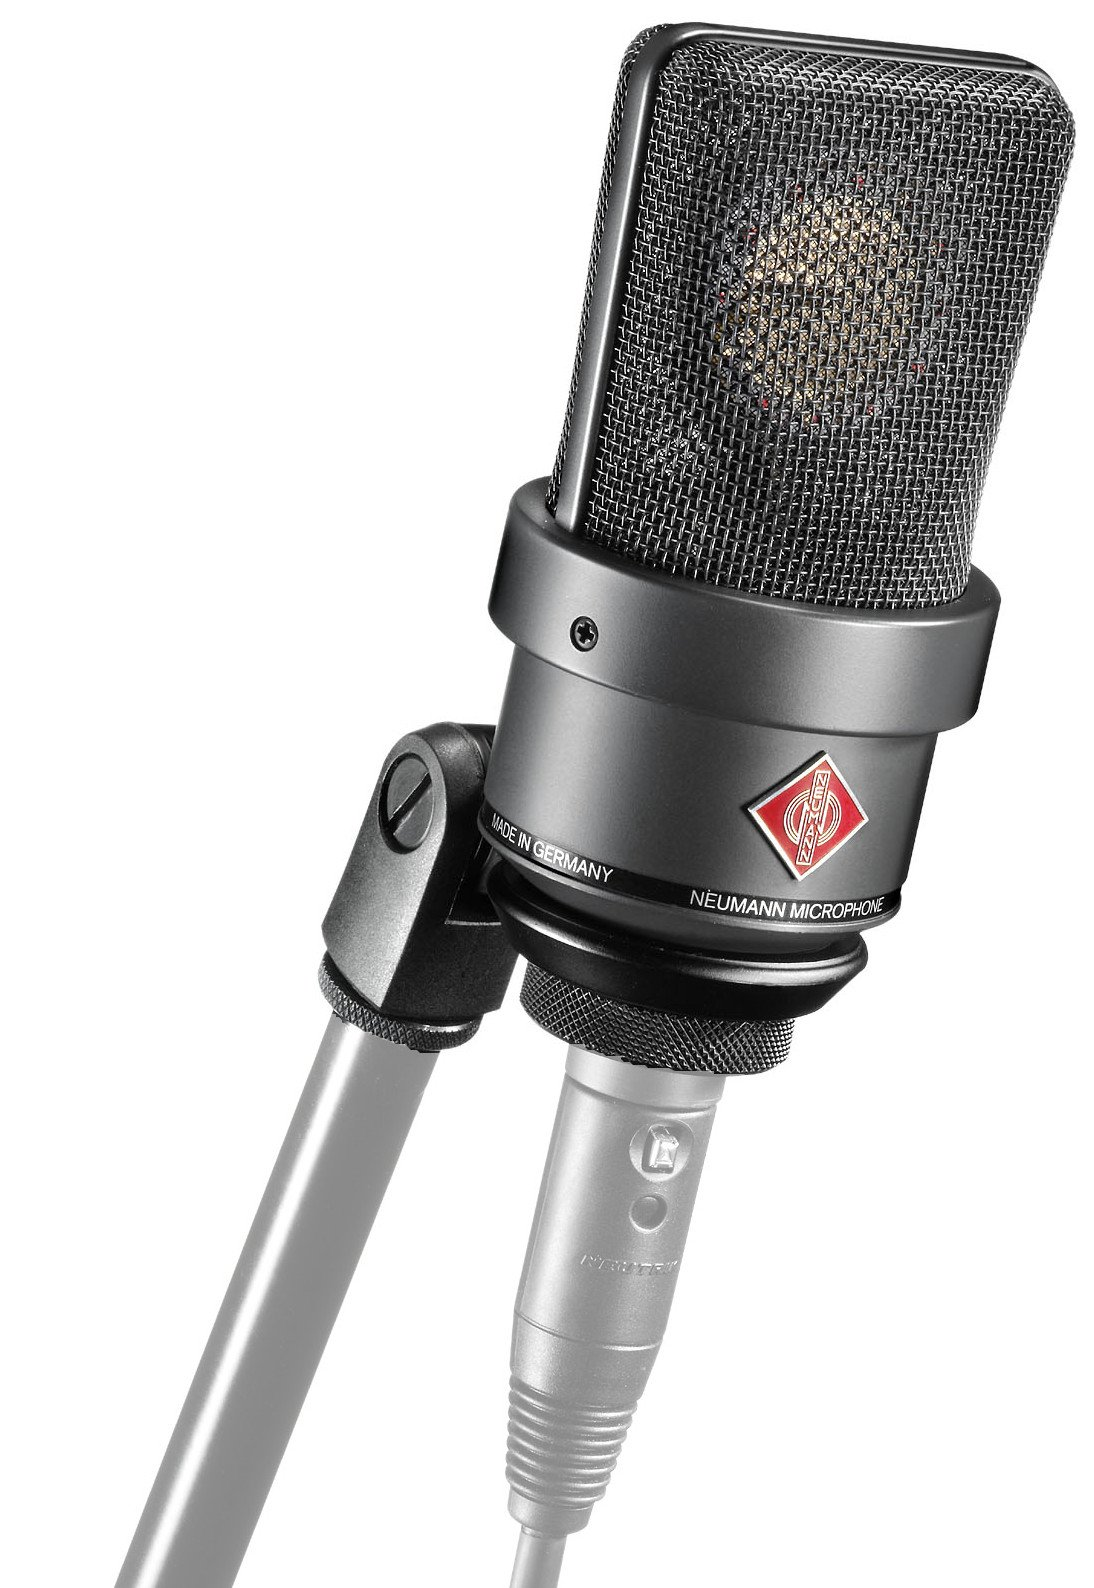 Large Diaphragm Cardioid Microphone in Matte Black Finish with SG1 Swivel Mount & Wood Box